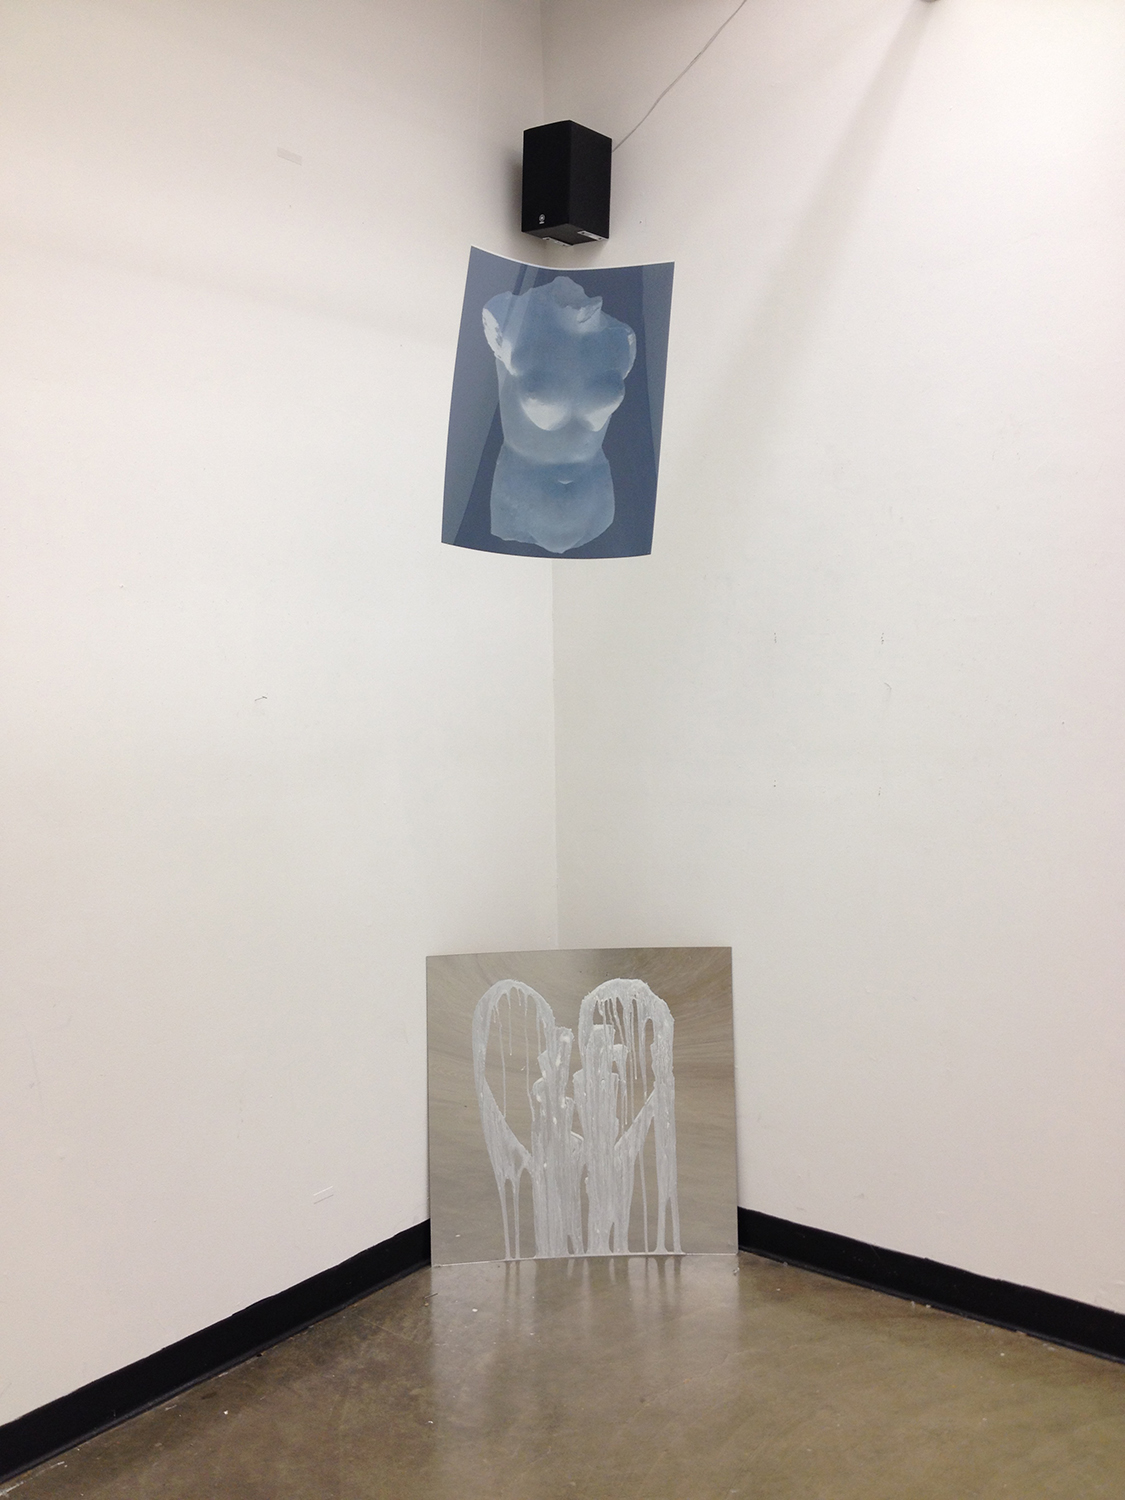 Installation View,  As Fool's Idol is to False Gold,  2014 [369hz tone, whipped cream, warped mirror, photographic negative]